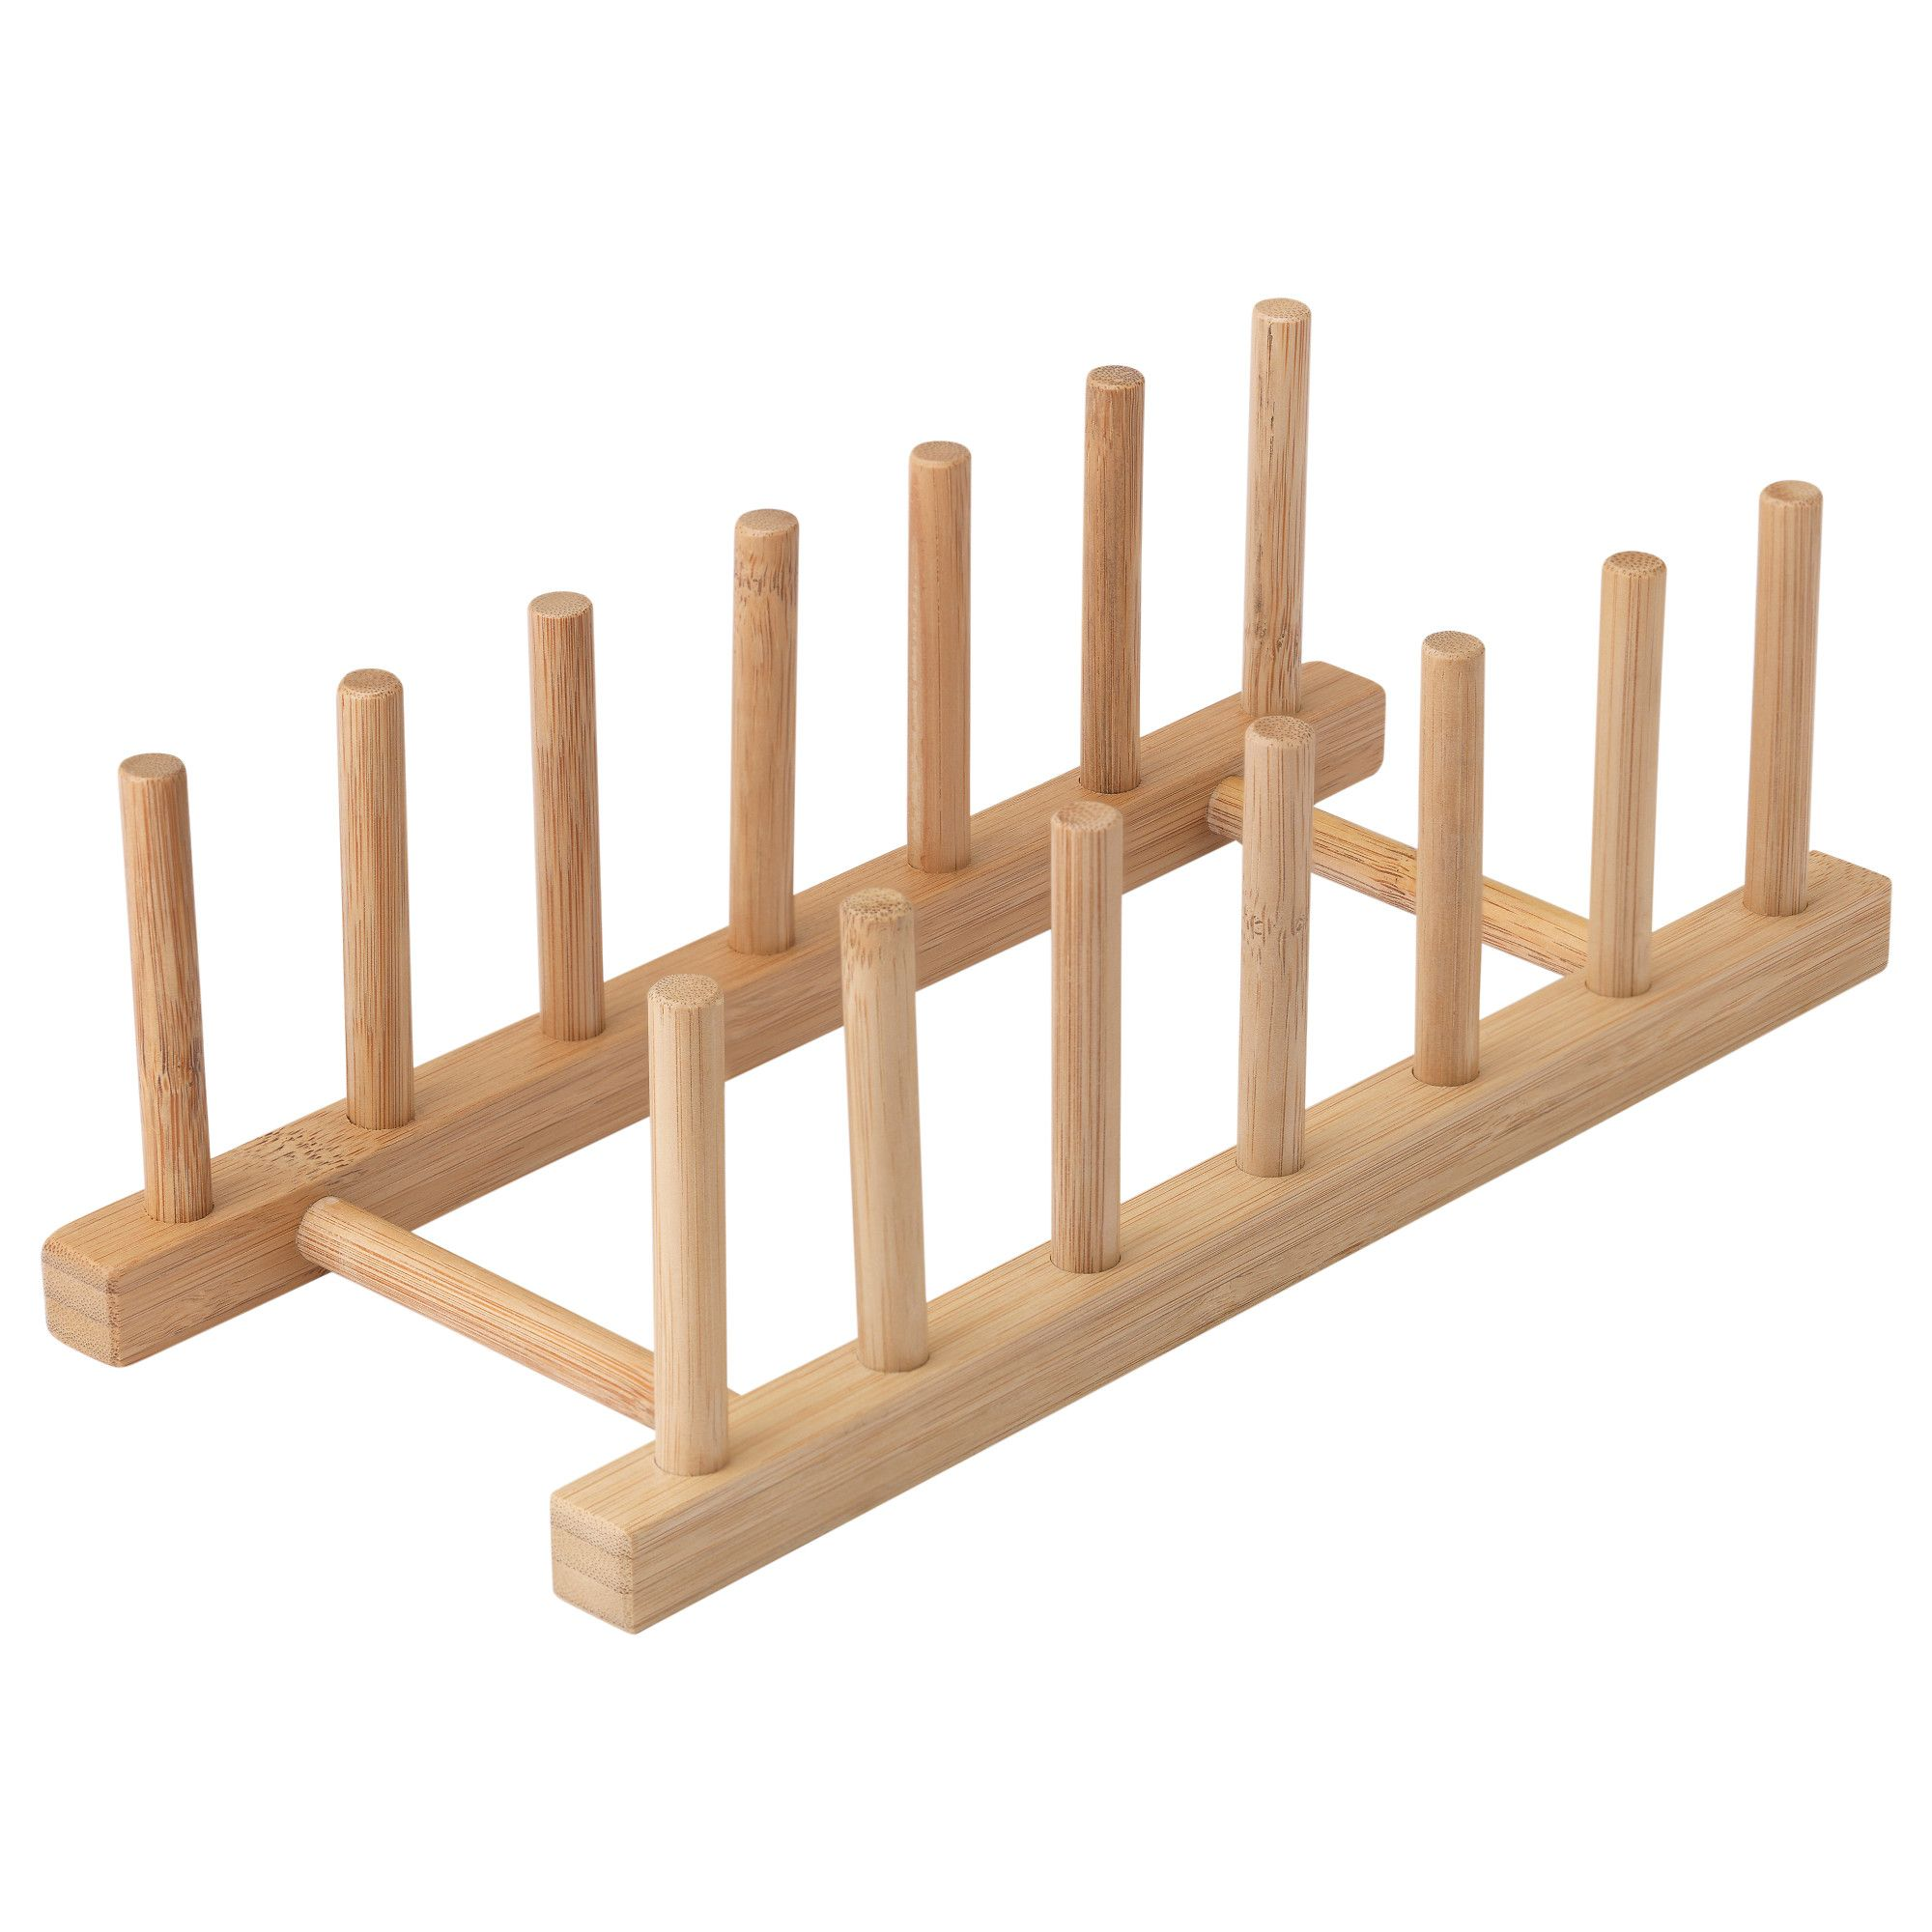 Bordenhouder Ikea Ostbit Plate Holder Bamboo In 2019 Amazing Gifts From Cody